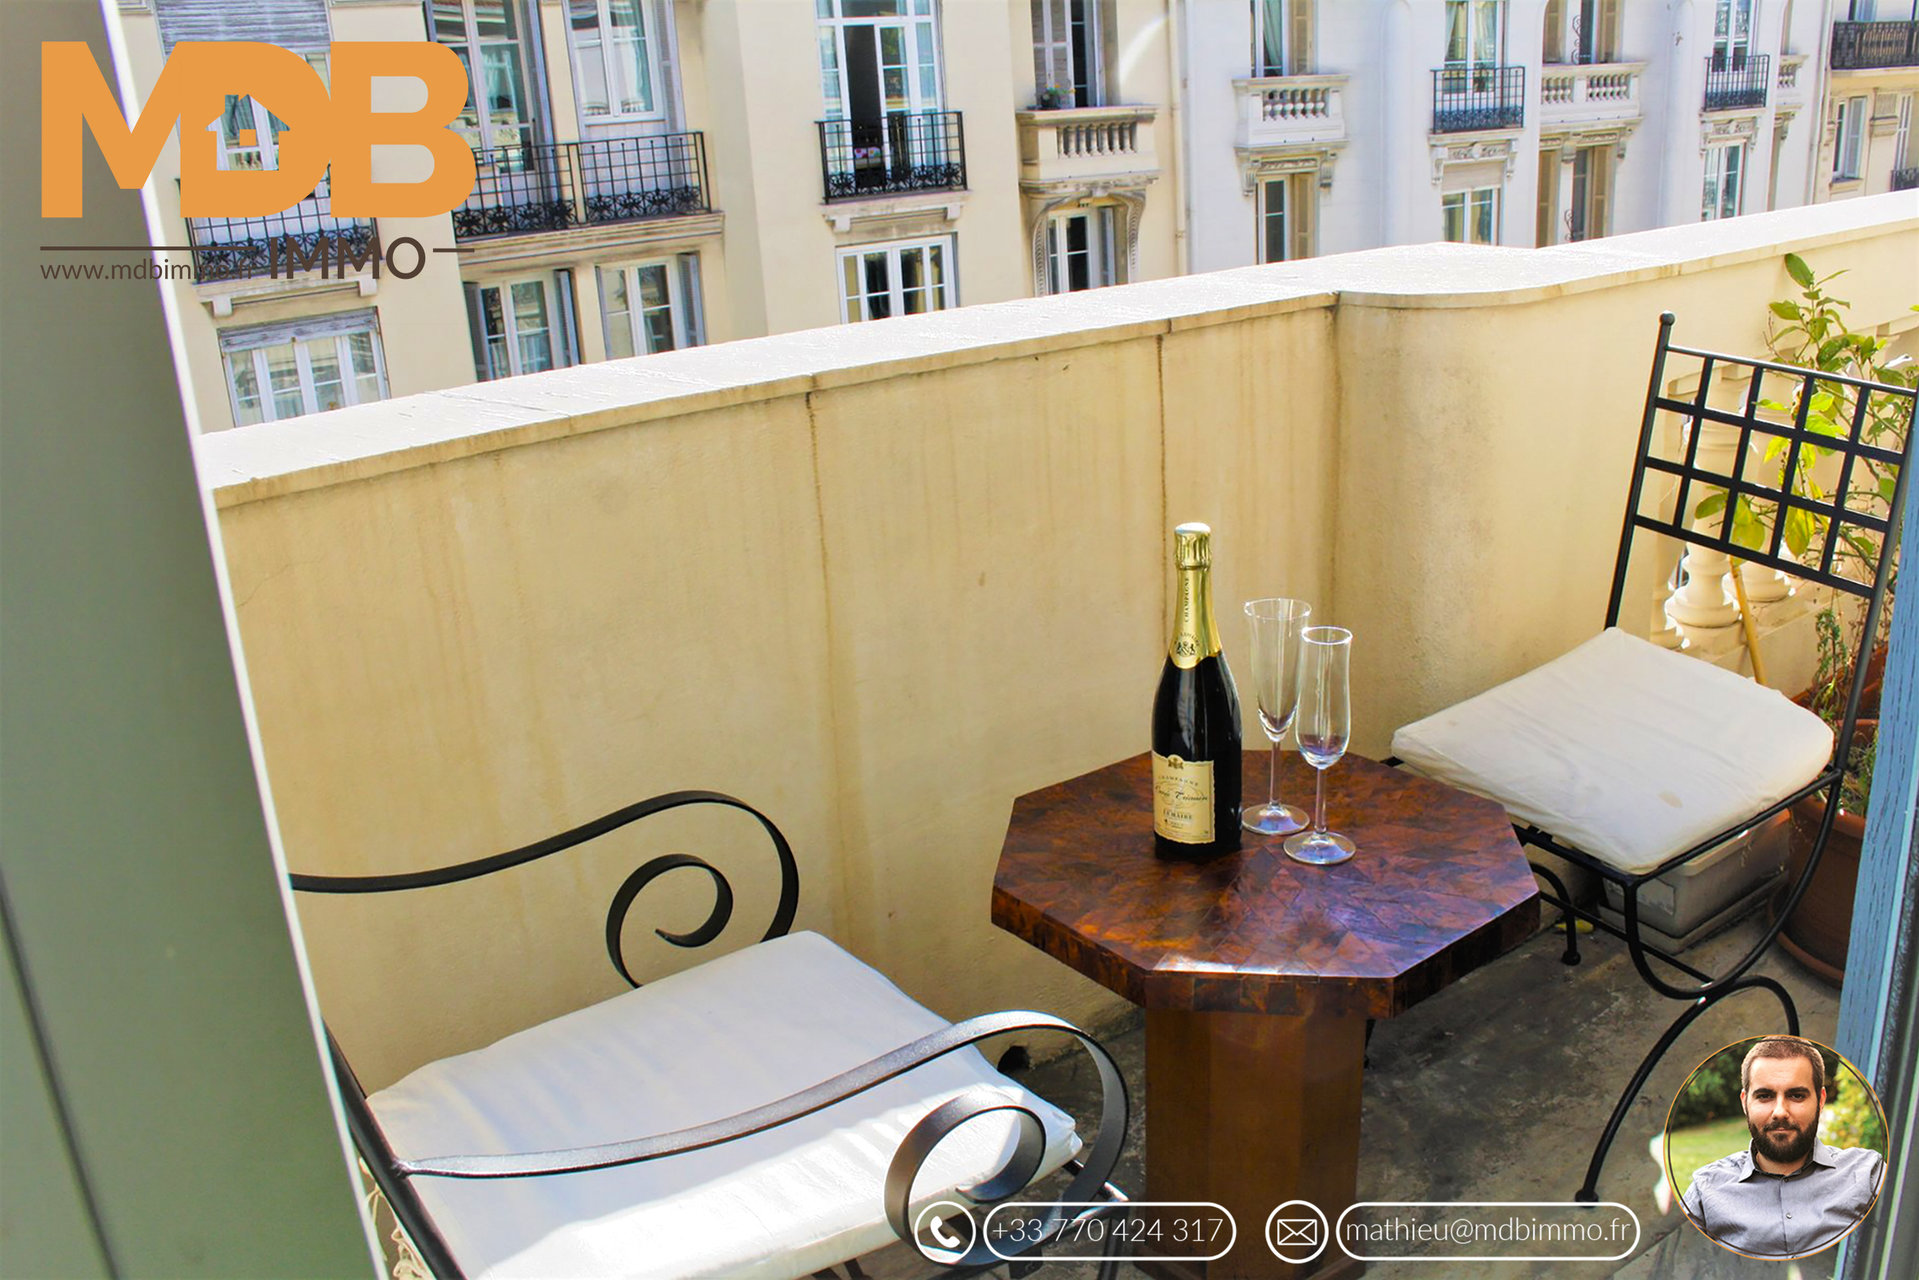 Charmant appartement au coeur du Carré d'Or